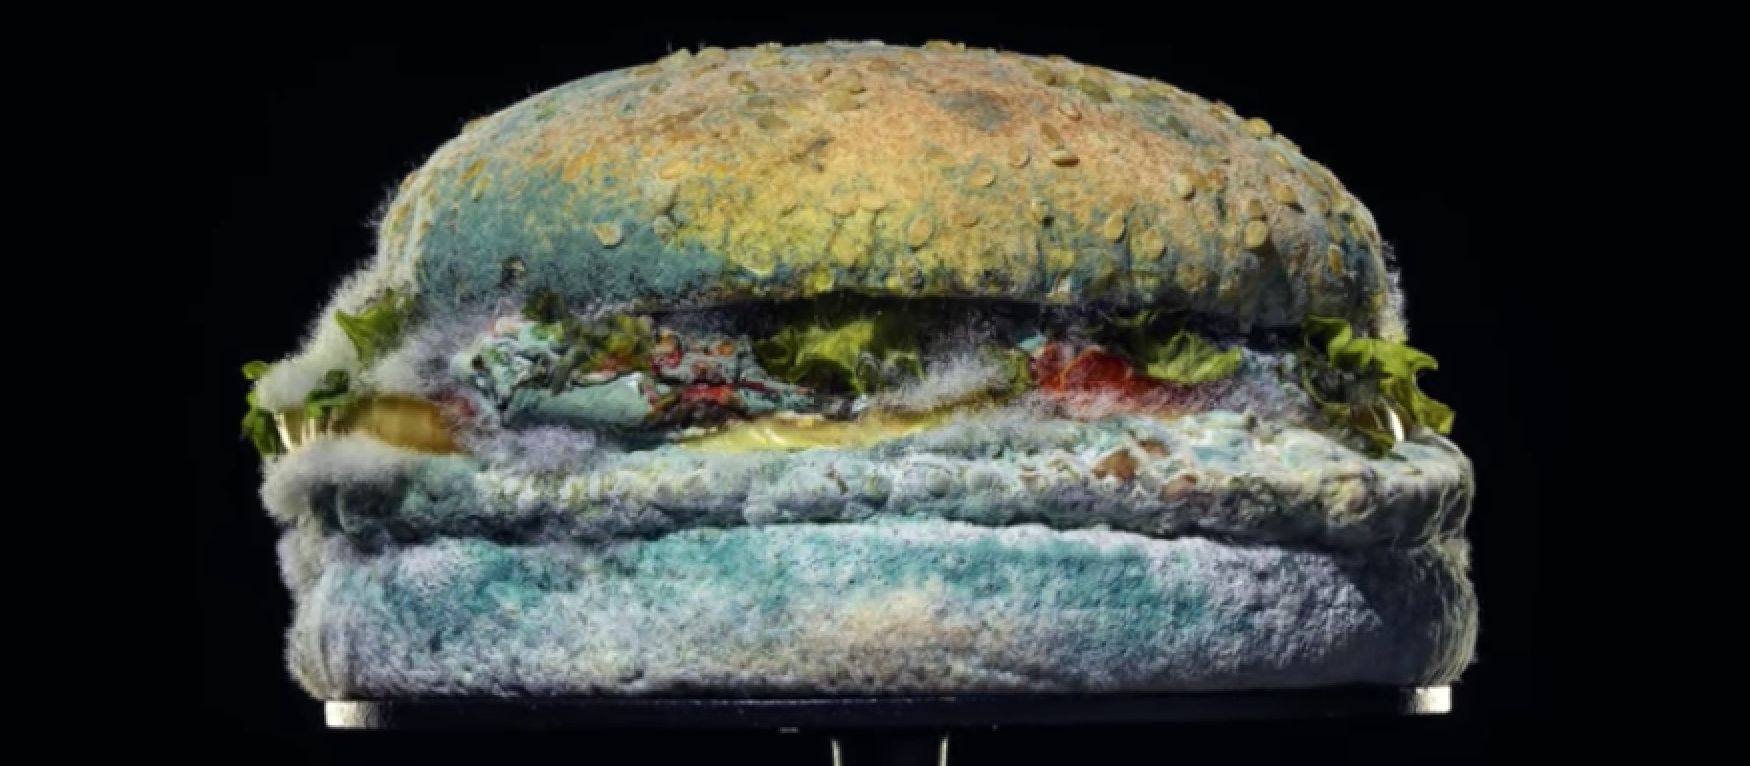 An unappetizing picture of a Burger King whopper with furry gray and green mold on it.